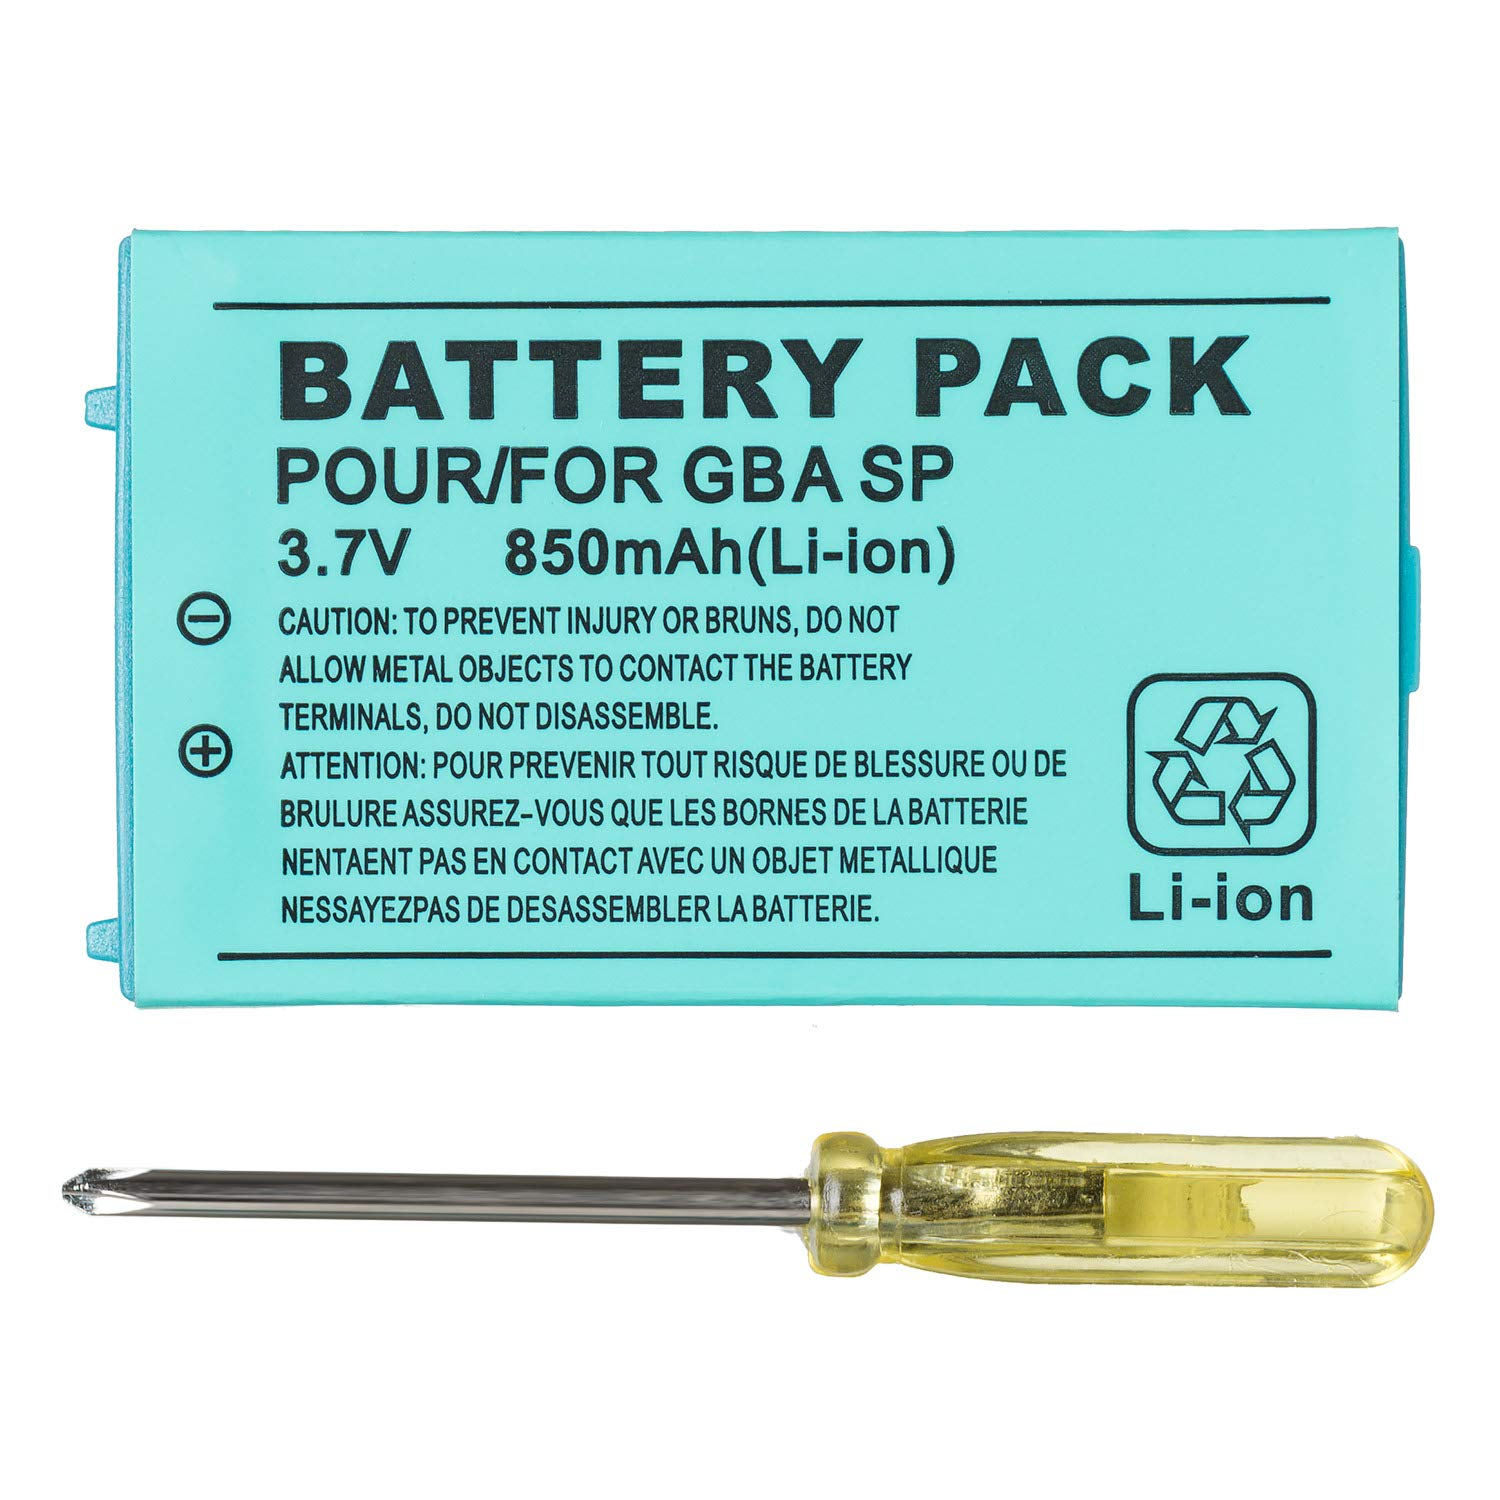 OSTENT 850mAh Rechargeable Lithium-ion Battery + Tool Pack Kit Compatible for Nintendo GBA SP